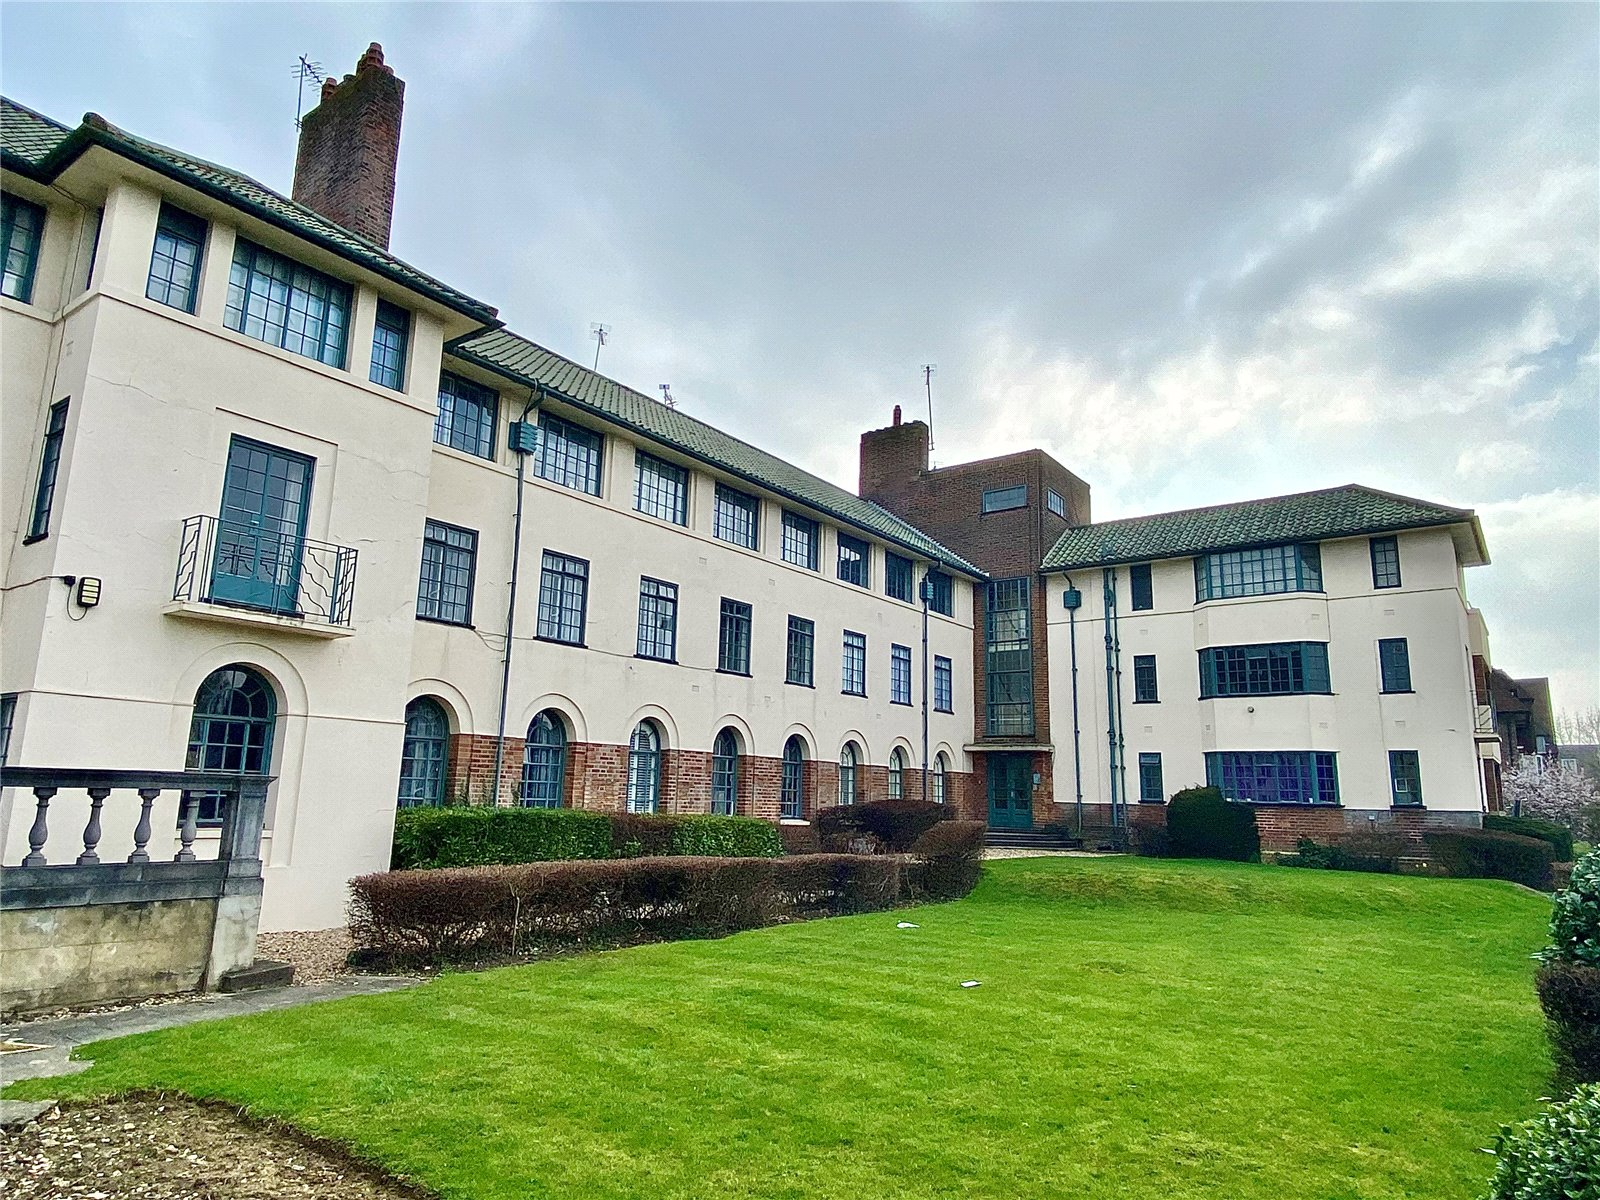 3 bed apartment for sale in Temple Fortune, NW11 6XX 4